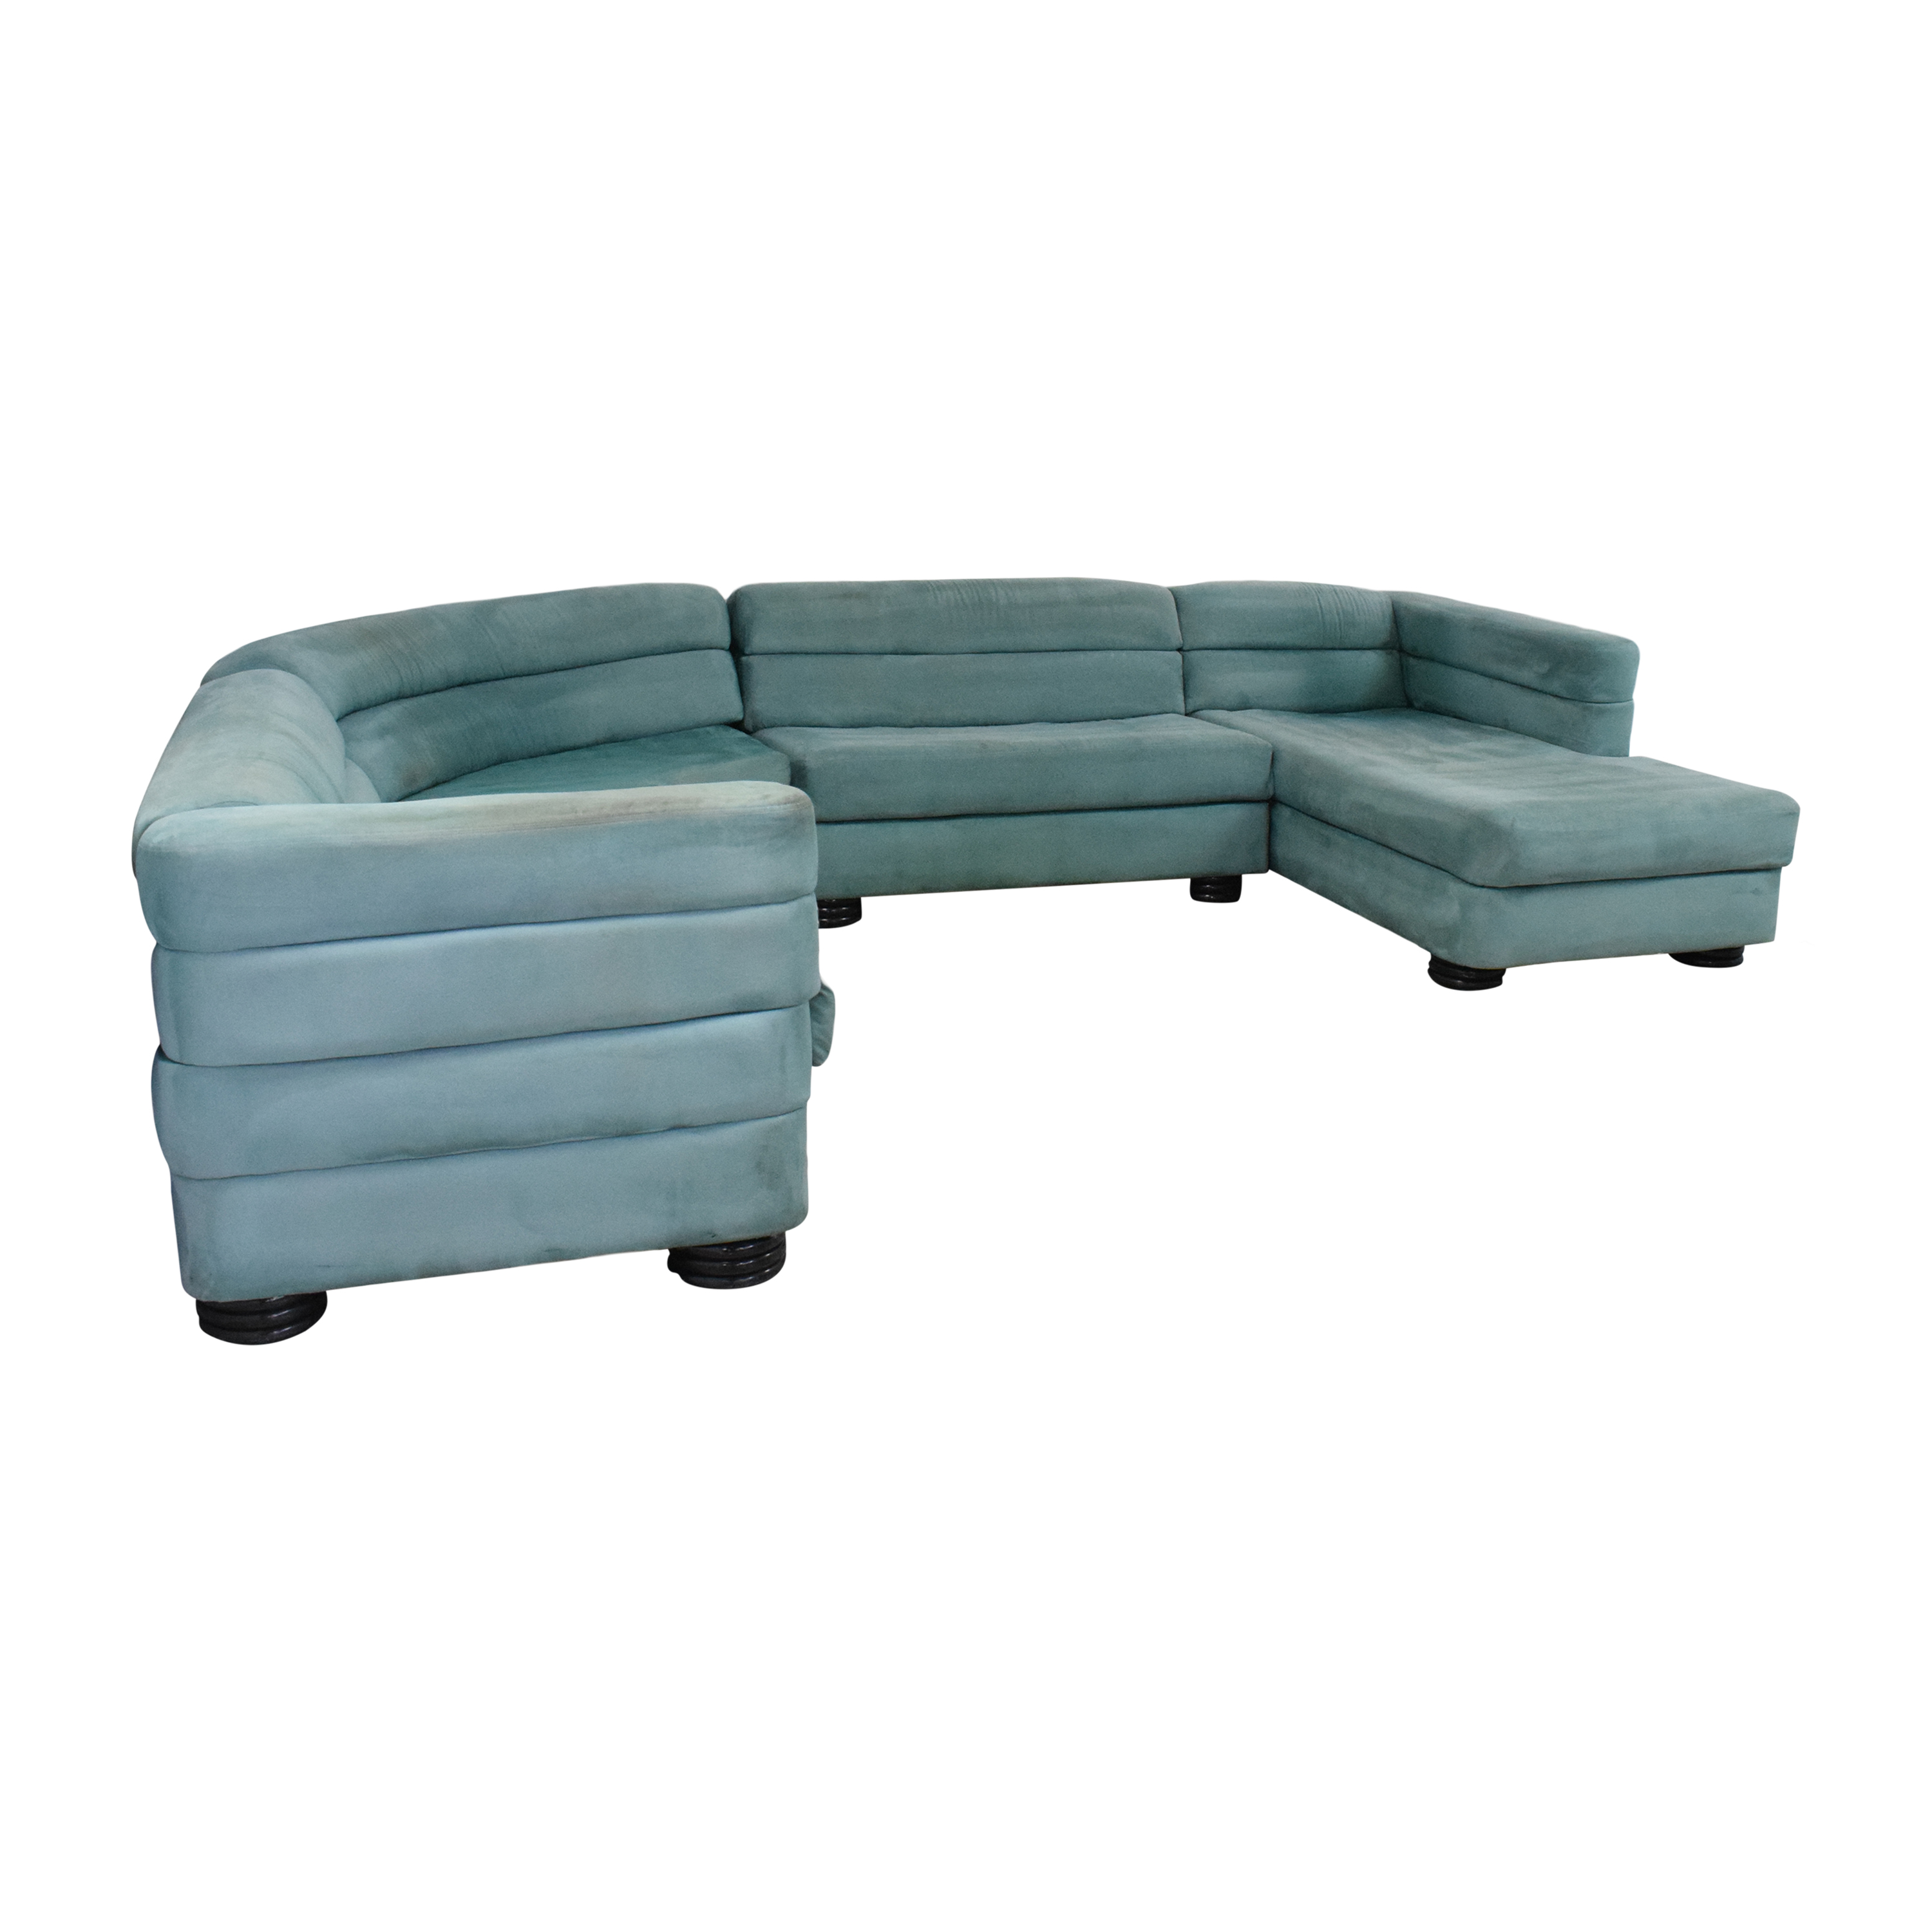 buy Directional Furniture Four Piece Sectional Sofa Directional Furniture Sofas